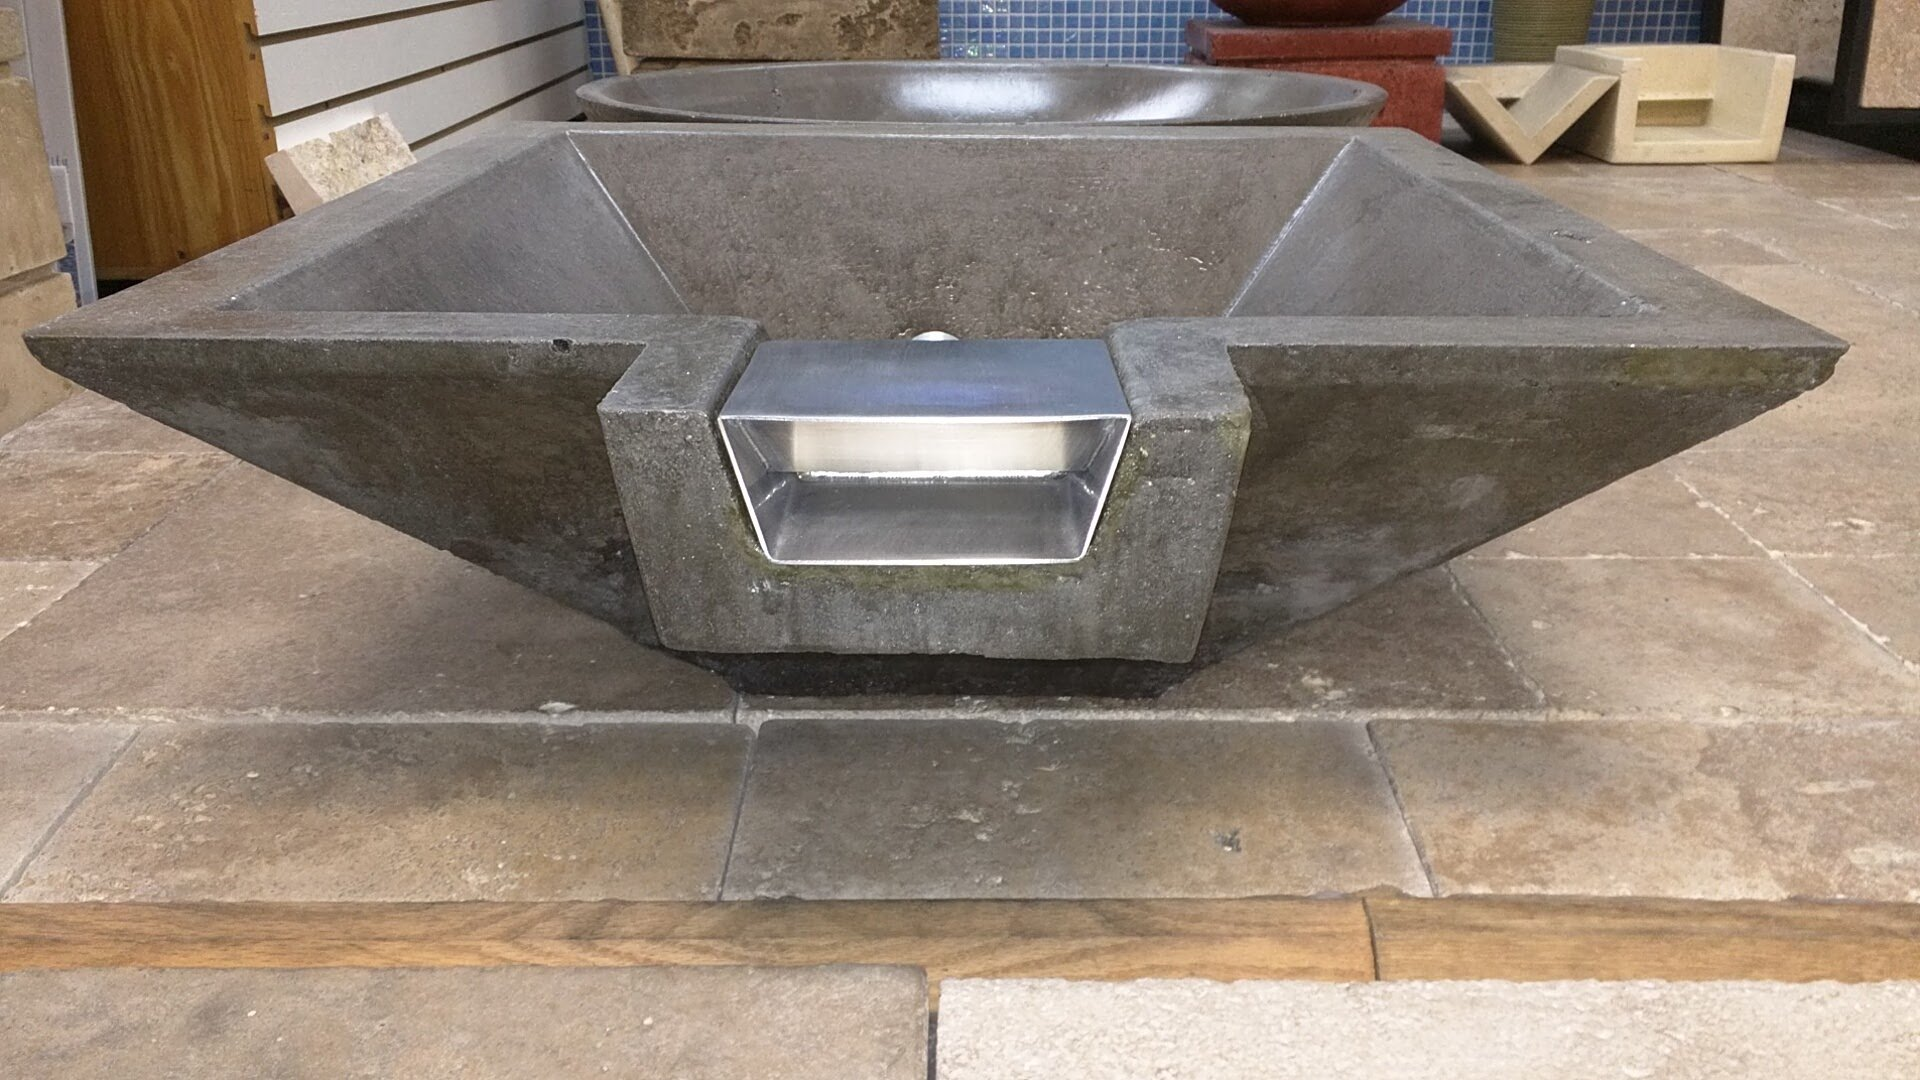 SCUP24S Stainless Water Scupper/ Waterfall Spillway 3.5″w (bottom) 4.75″w (top) 4″ Deep; 3/4 Female Pipe Inlet; Make a Gas FIRE OVER WATER Bowl or Fountain! by easyfirepits.com